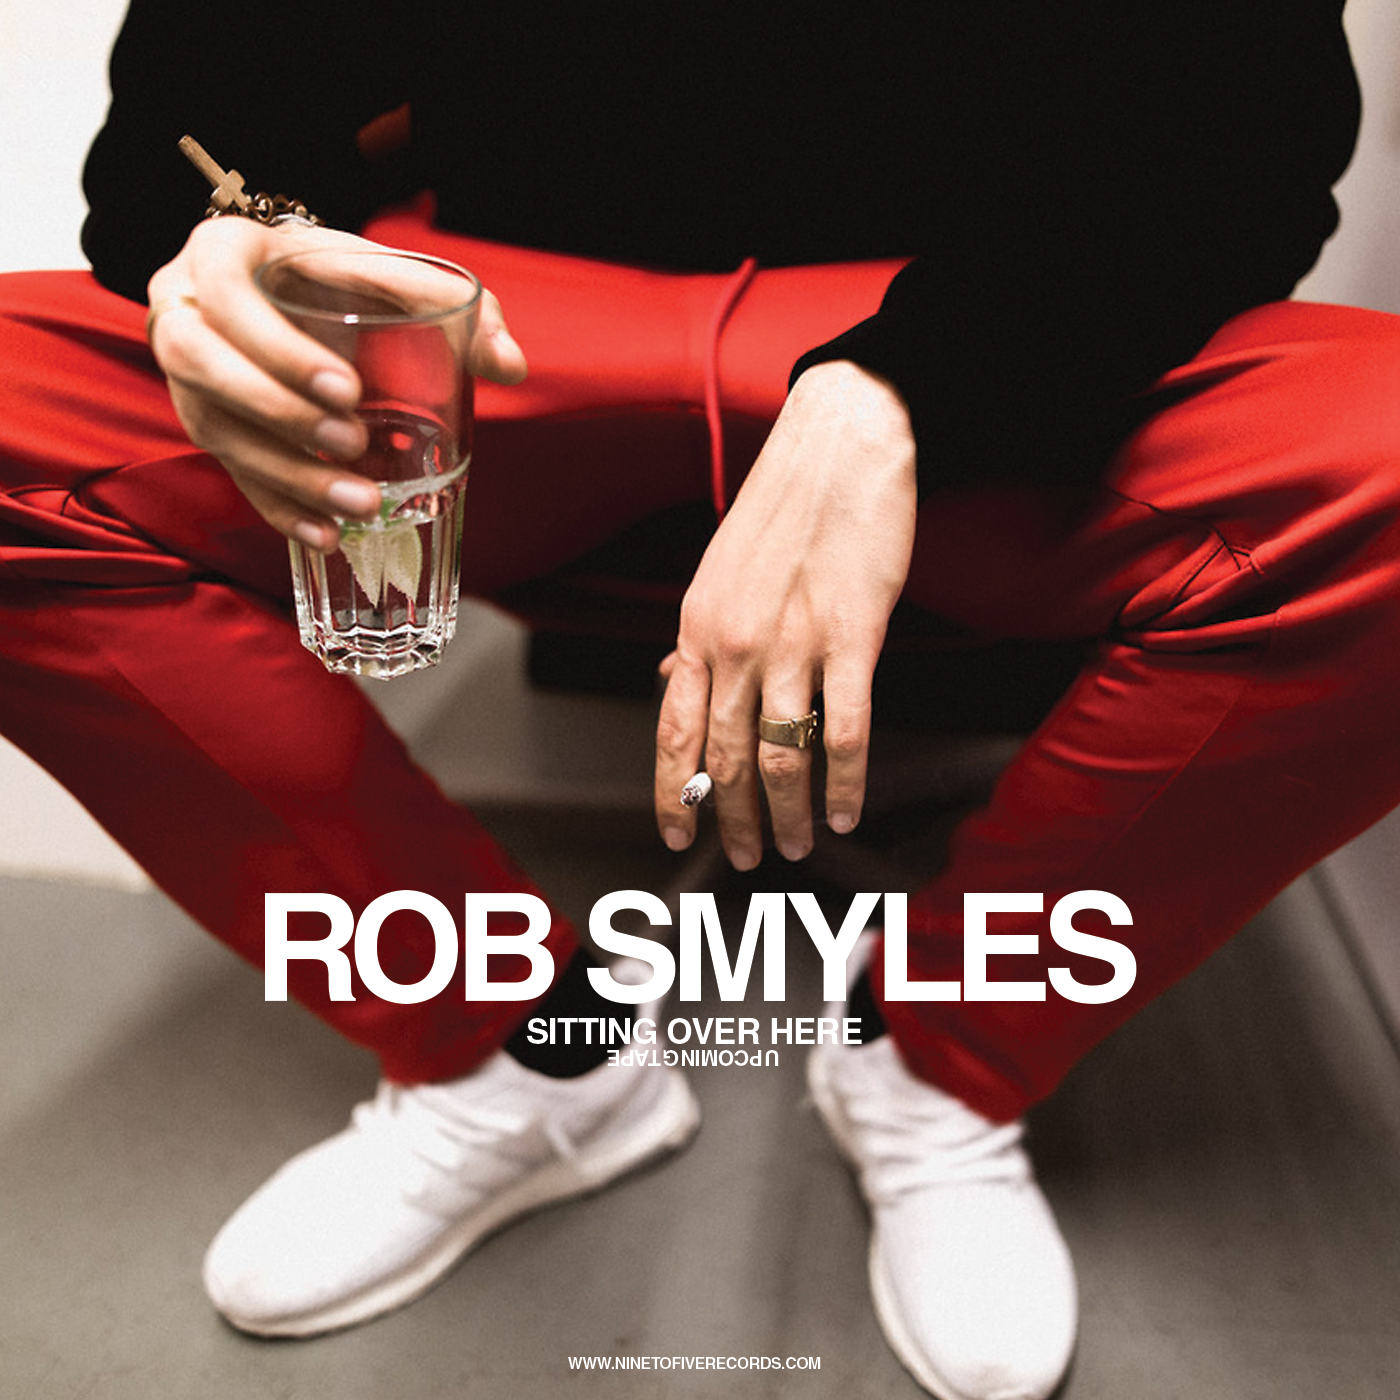 Rob Smyles - Sitting Over Here